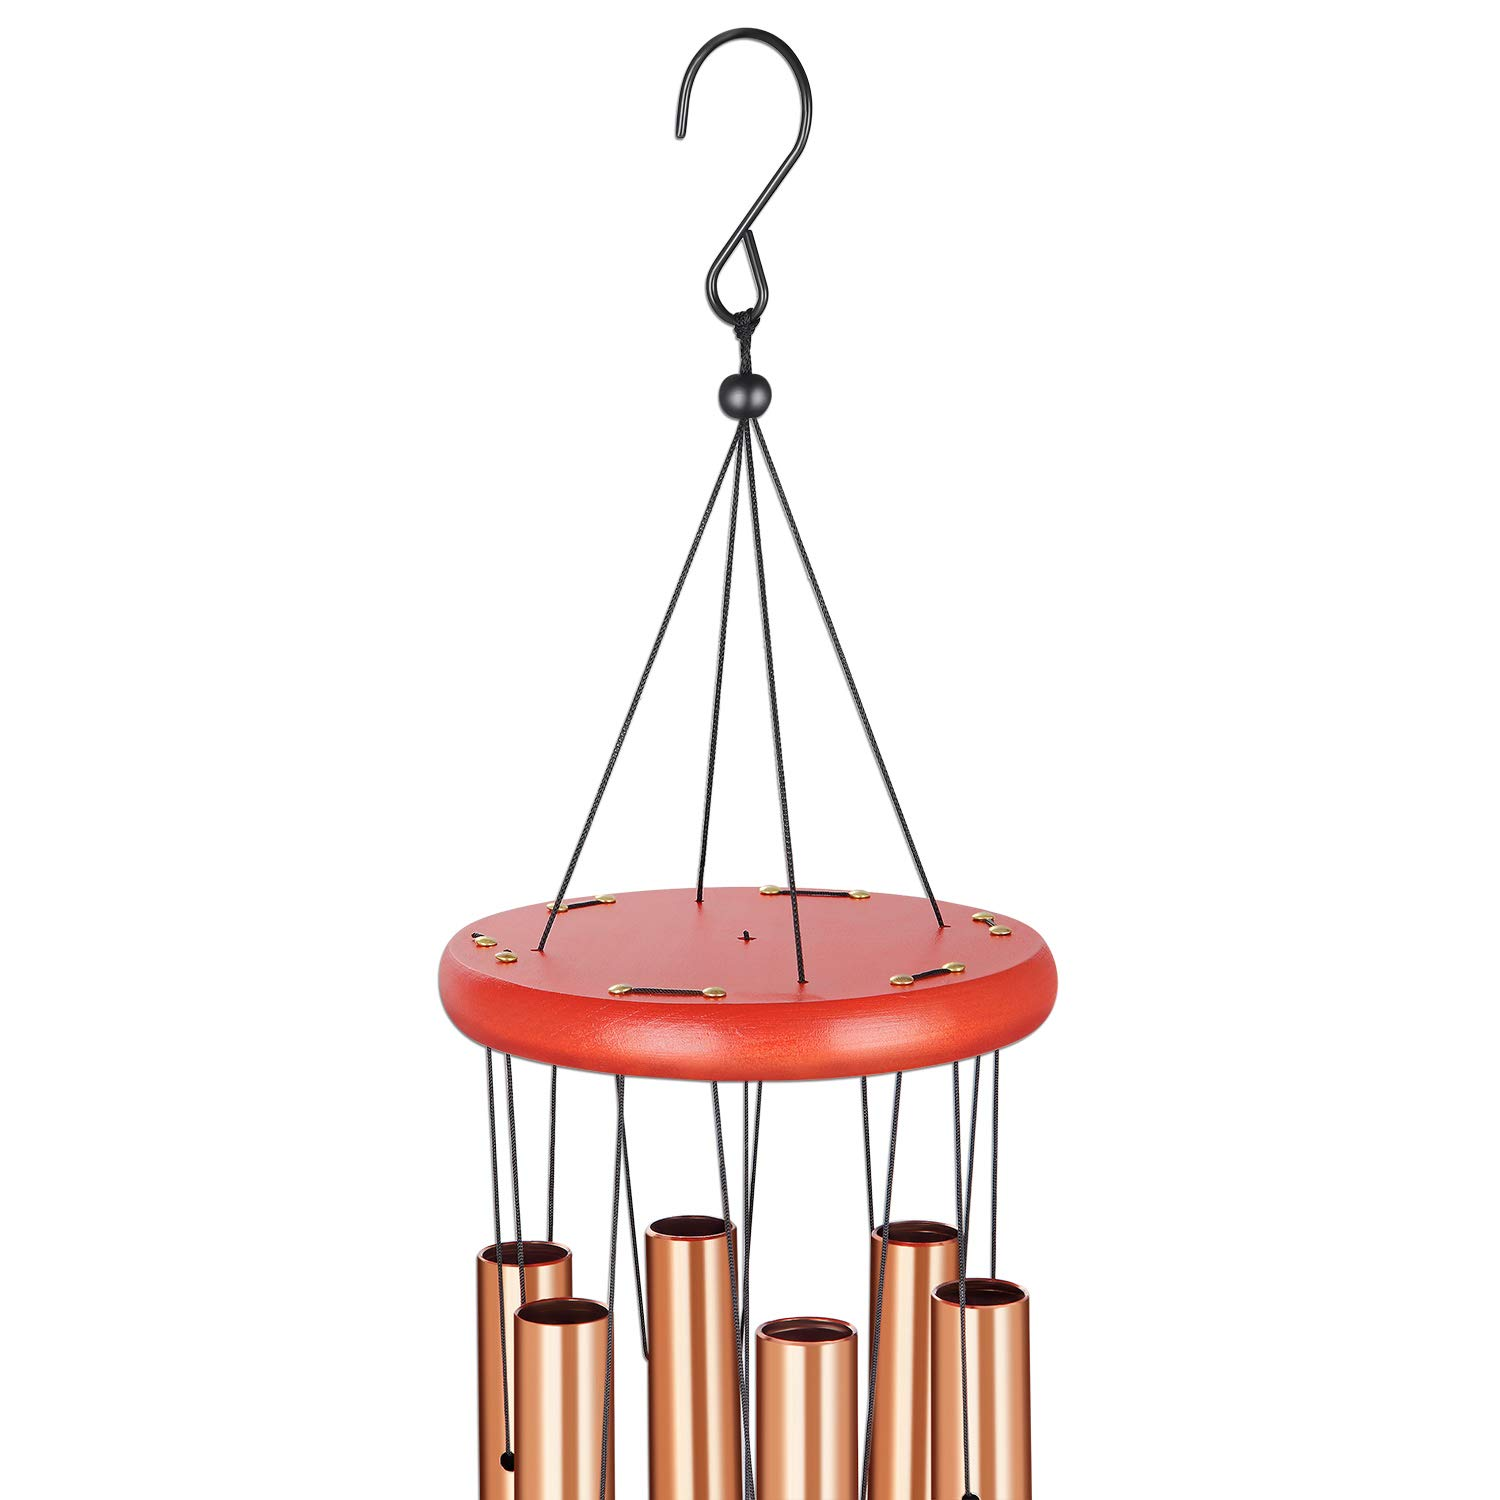 HoneForest Wind Chimes, 30 inches Soothing Rich Lasting Tones and Solidly Constructed Medium-Metal-Wind-Chimes-Outdoor, Decor for Yard Patio Garden